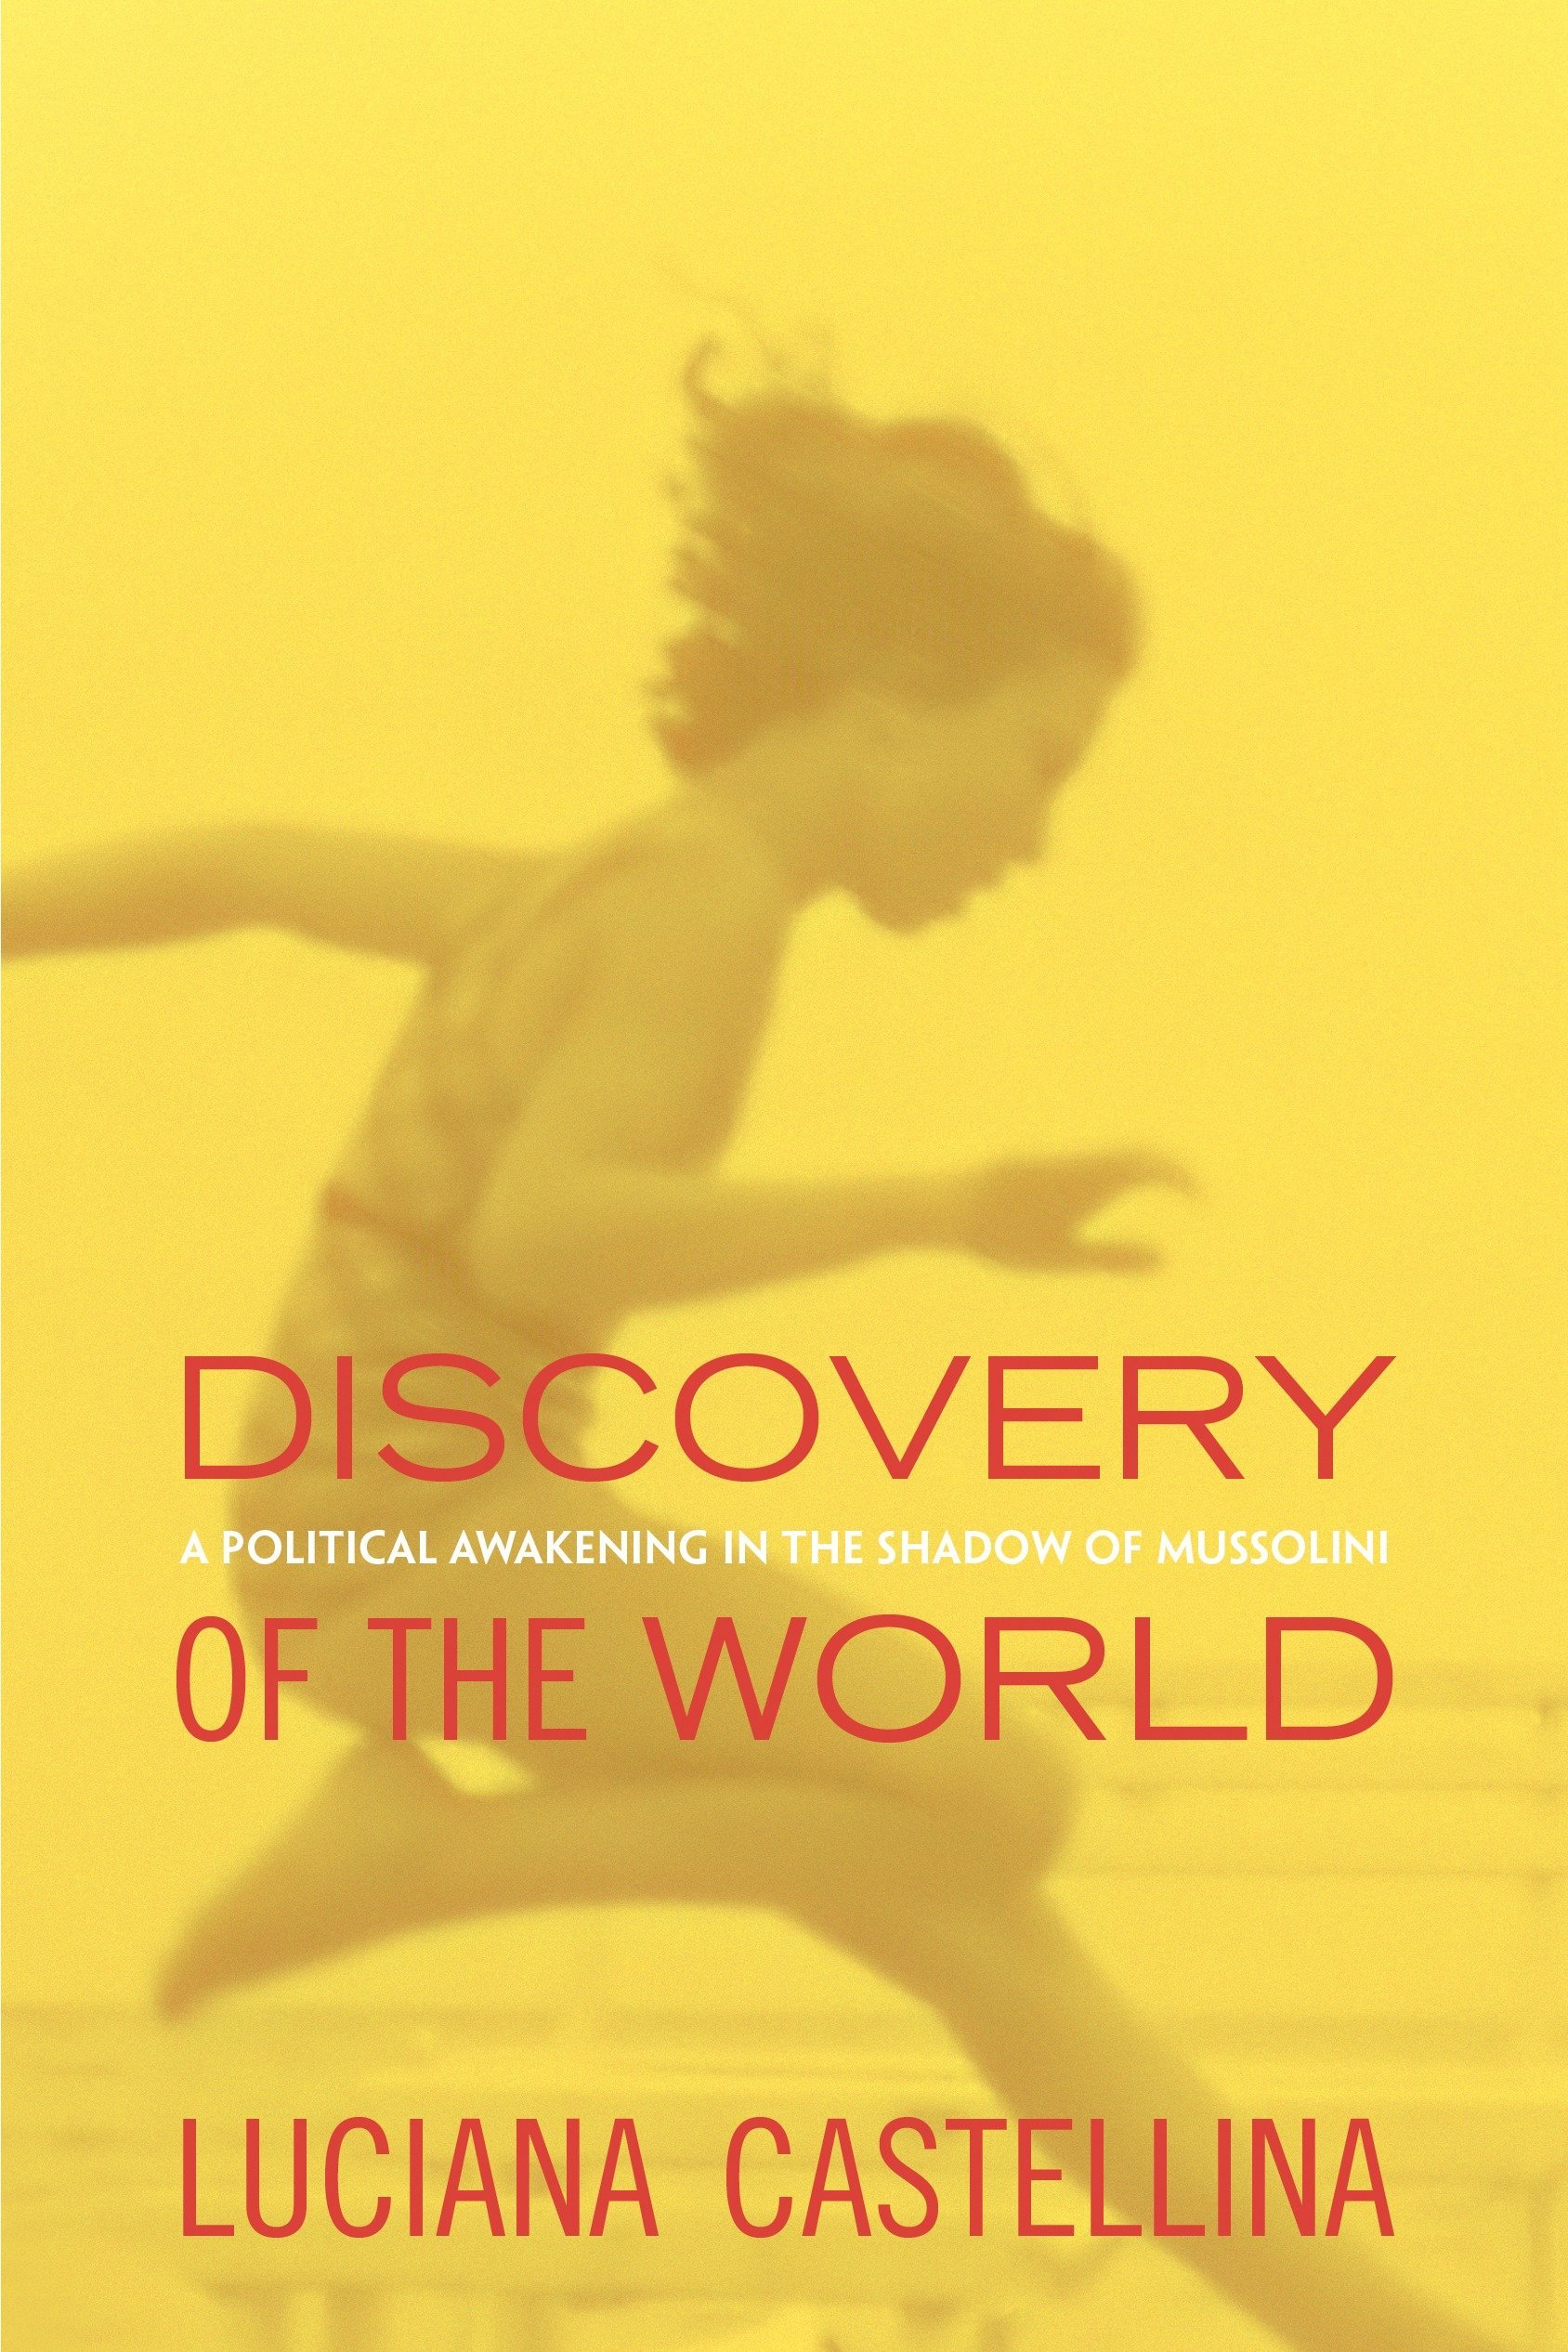 Download Discovery of the World: A Political Awakening in the Shadow of Mussolini pdf